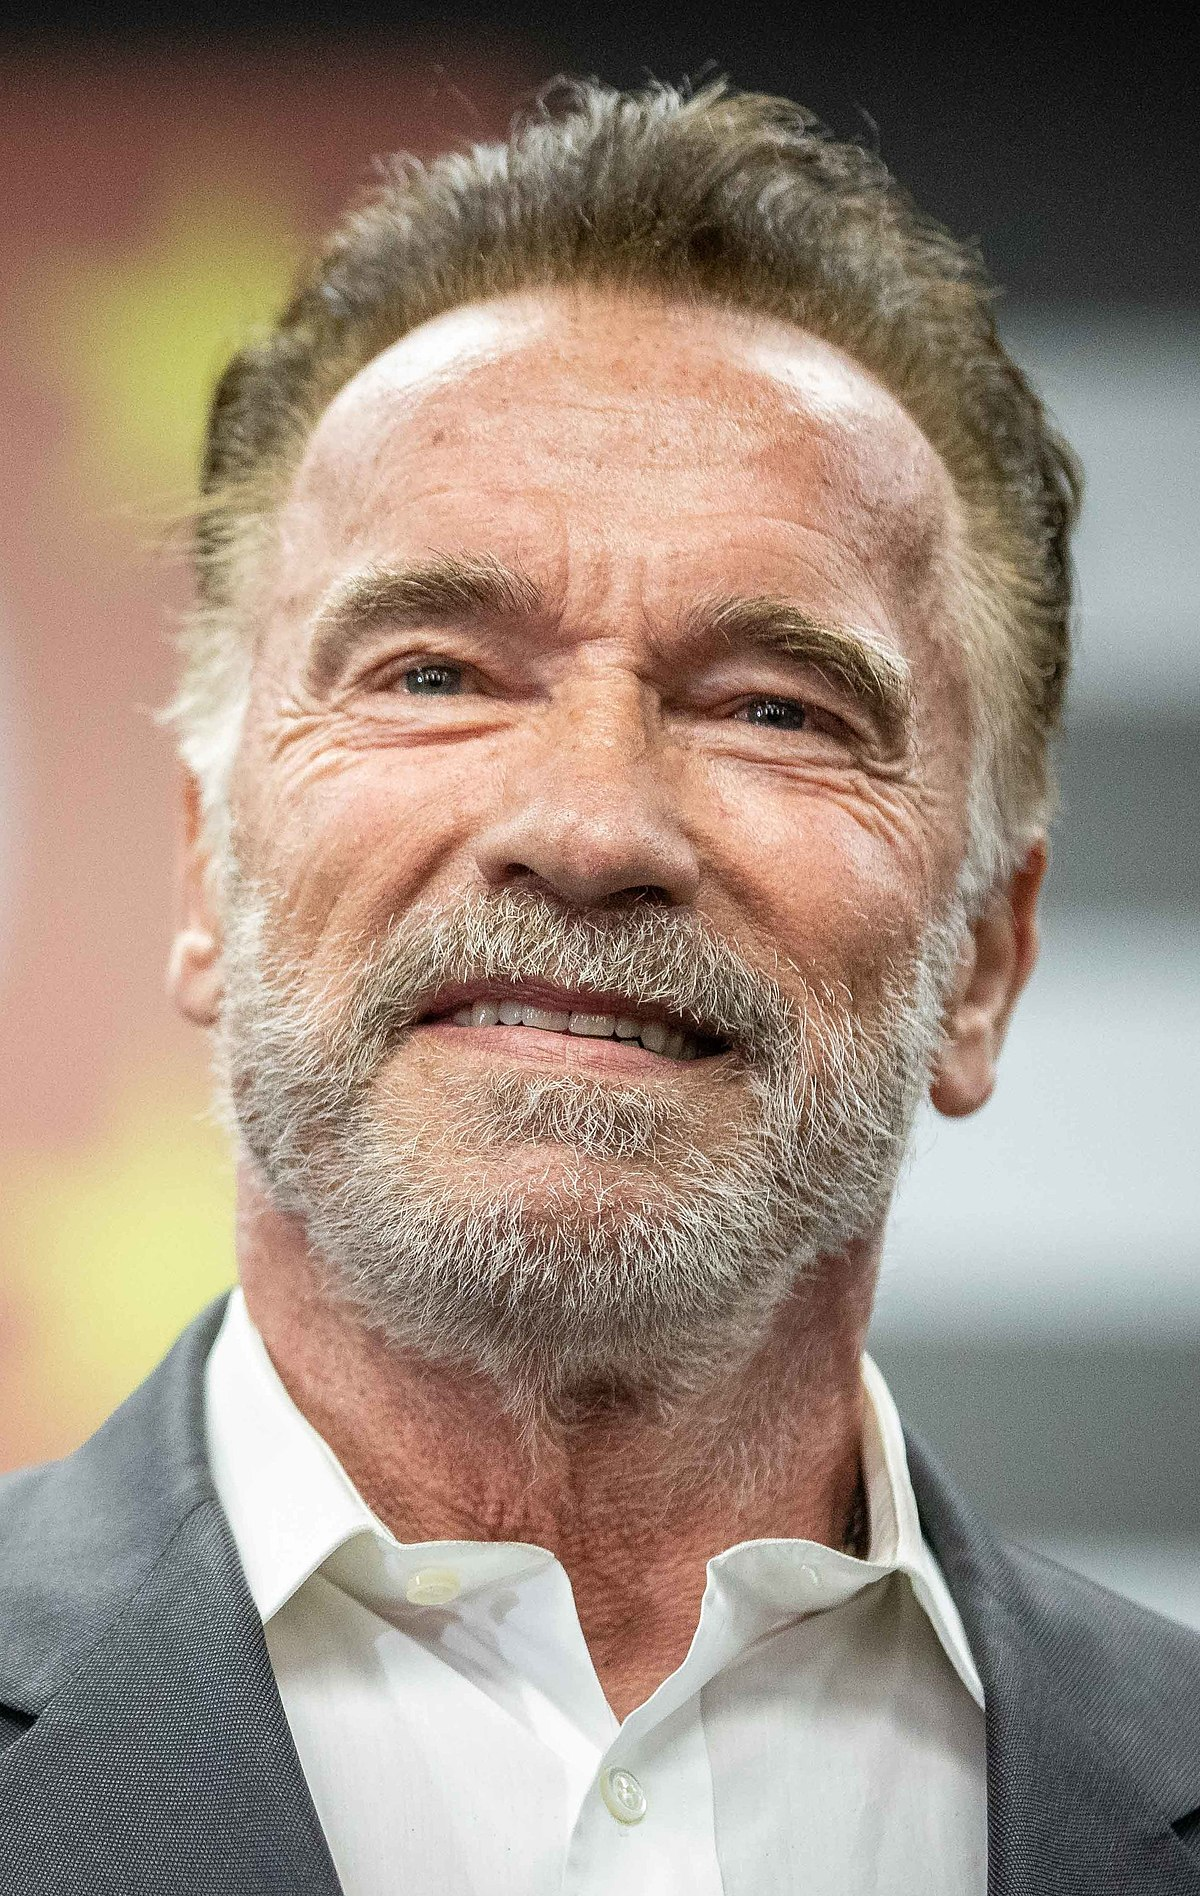 Plus Gros Crash D'avion Du Monde : crash, d'avion, monde, Arnold, Schwarzenegger, Wikipédia